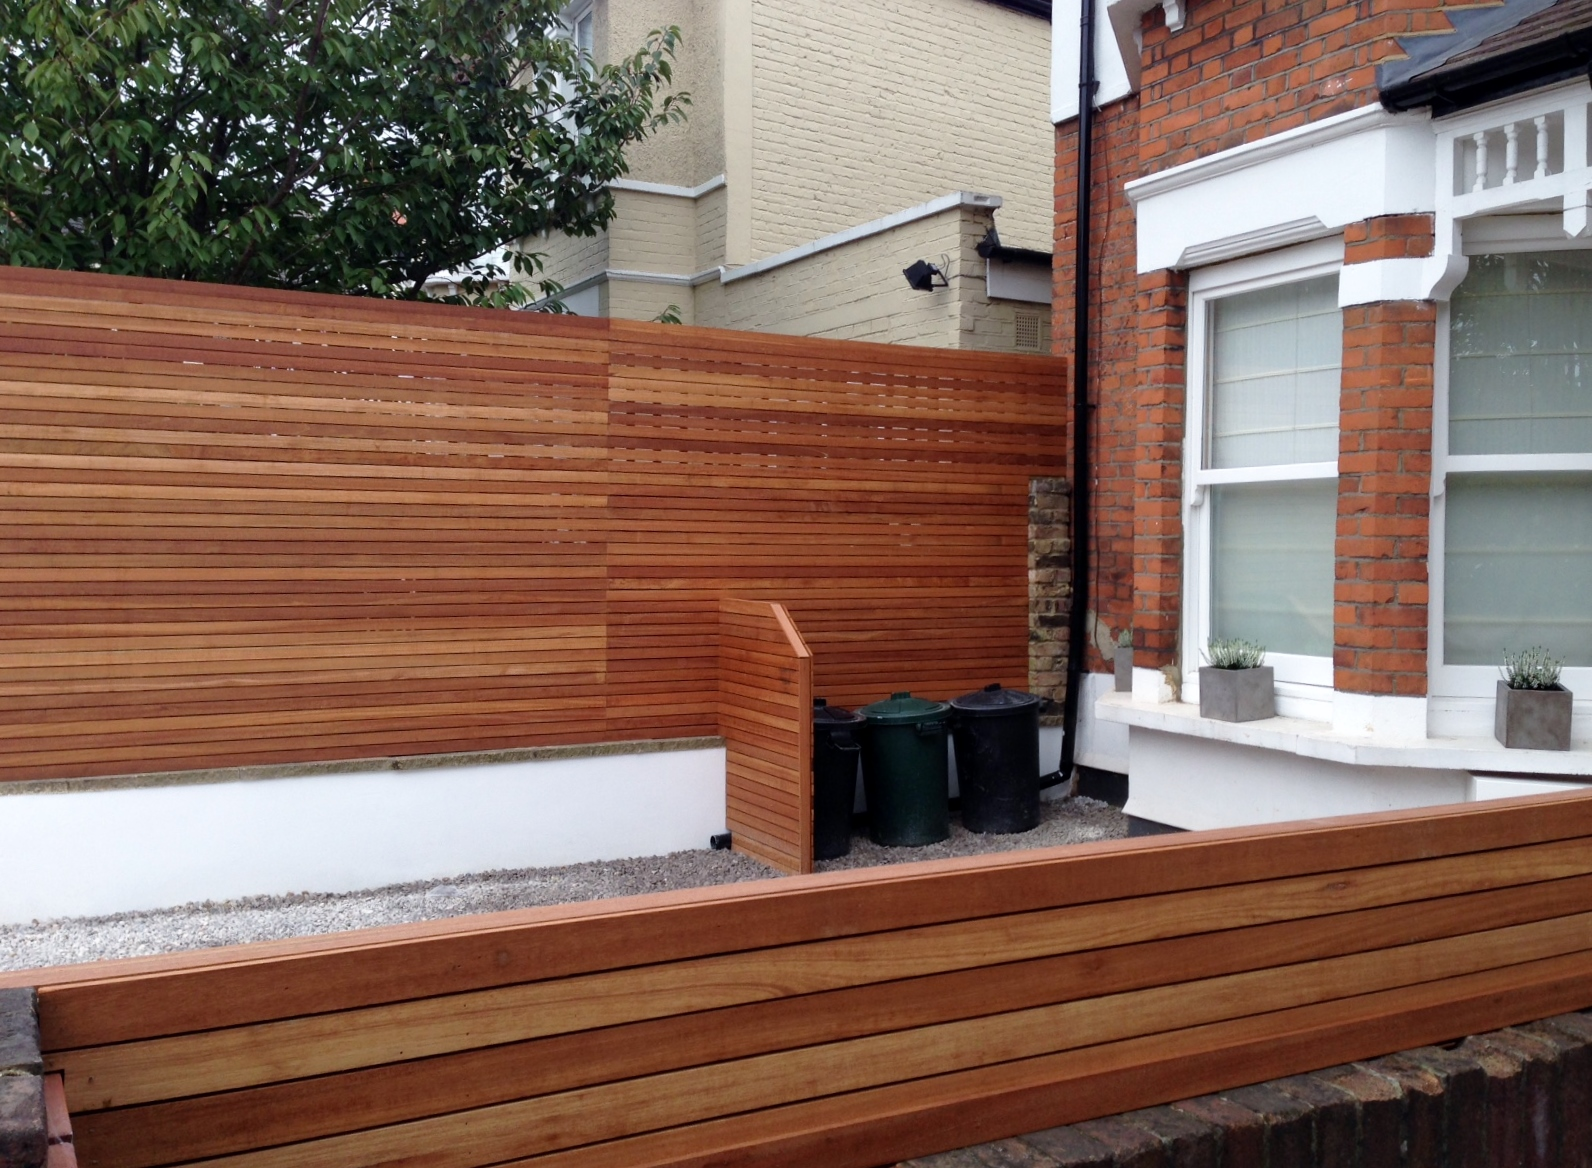 front garden drivewat gravel travertine paving path hardwood privacy screen trellis tooting london (24)